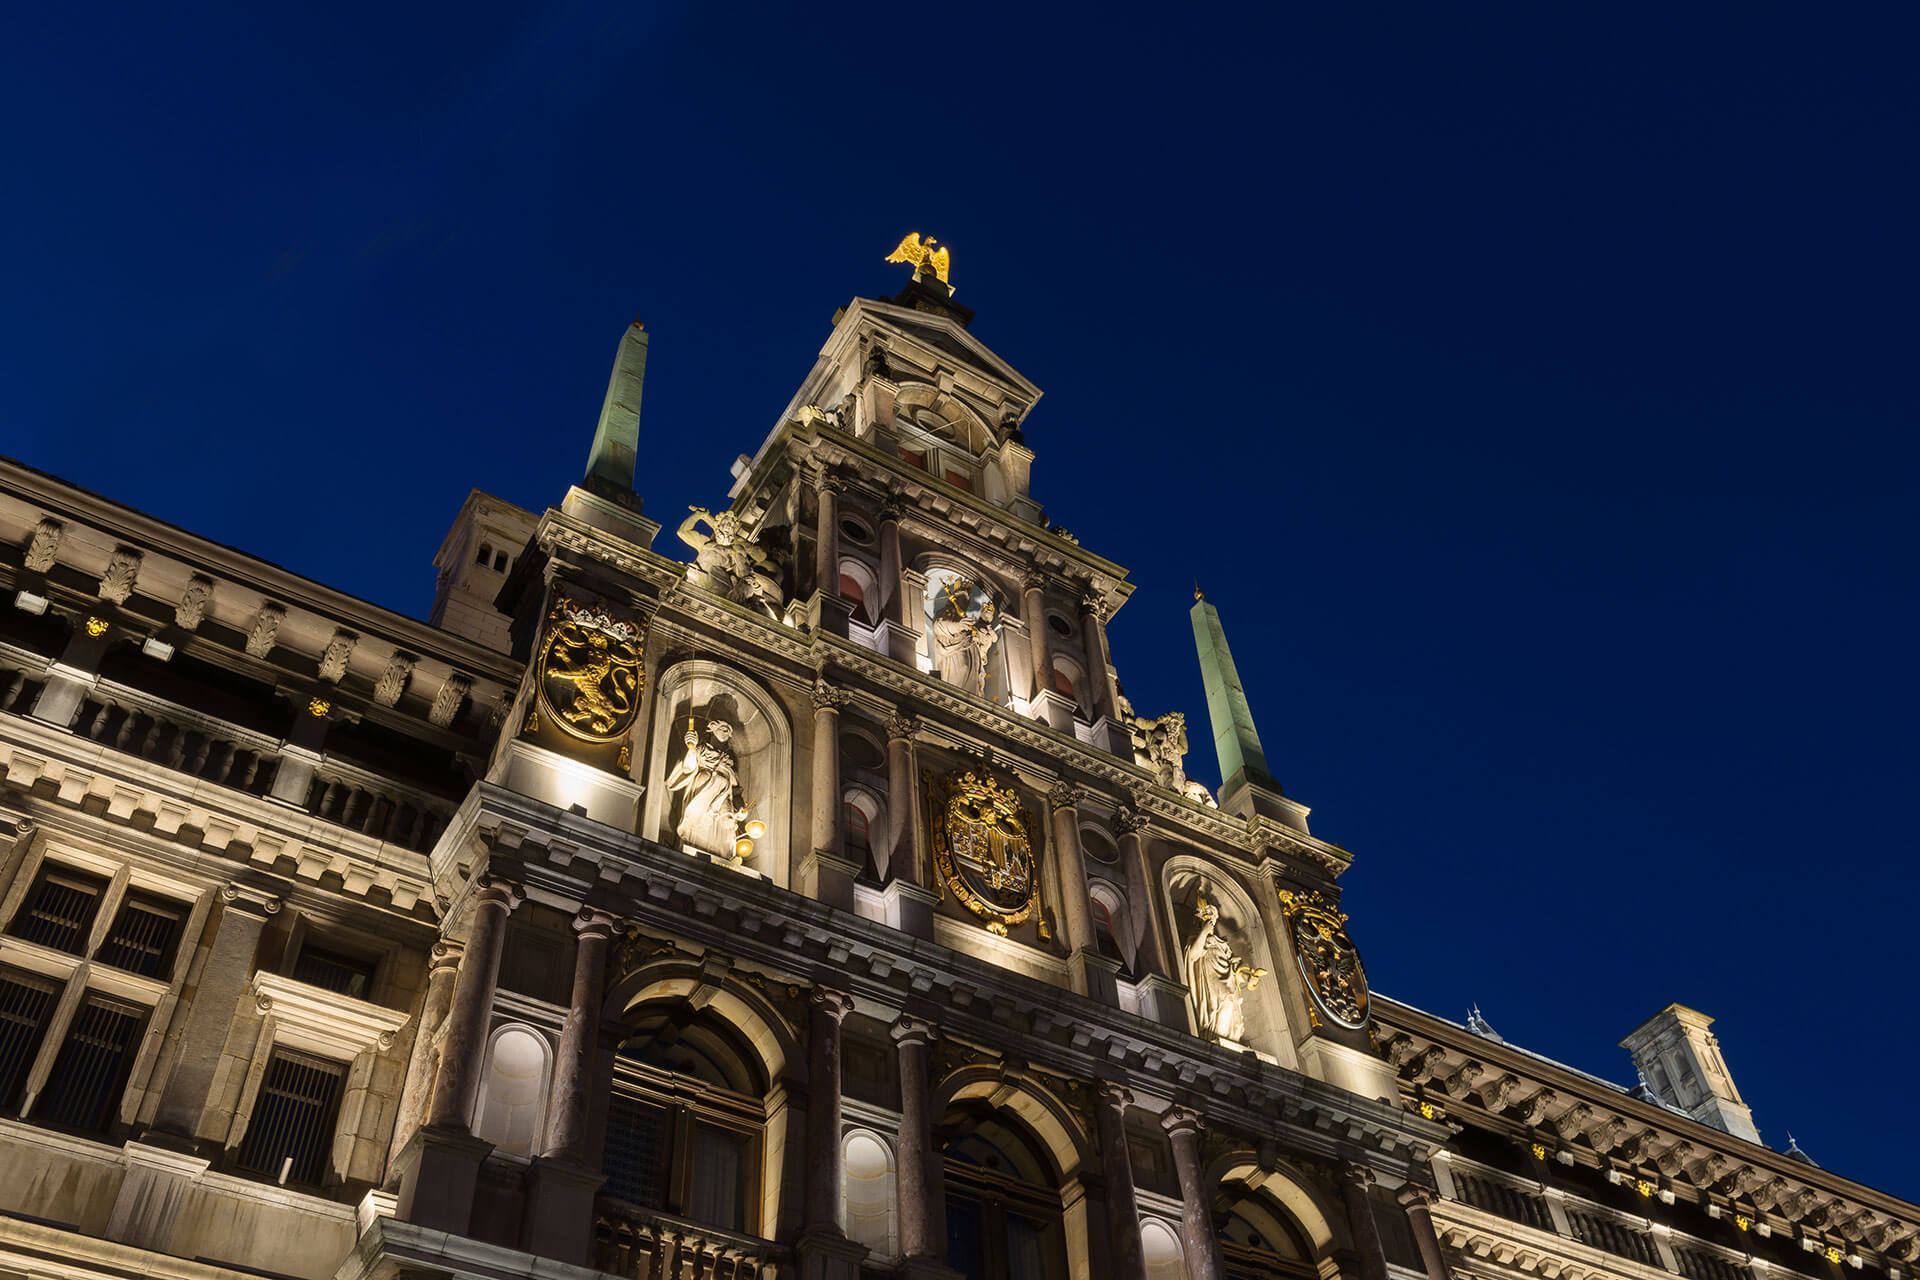 The magnificent architectural details of the Gothic facades on Grote Markt are brought to life at night thanks to Schréder floodlights